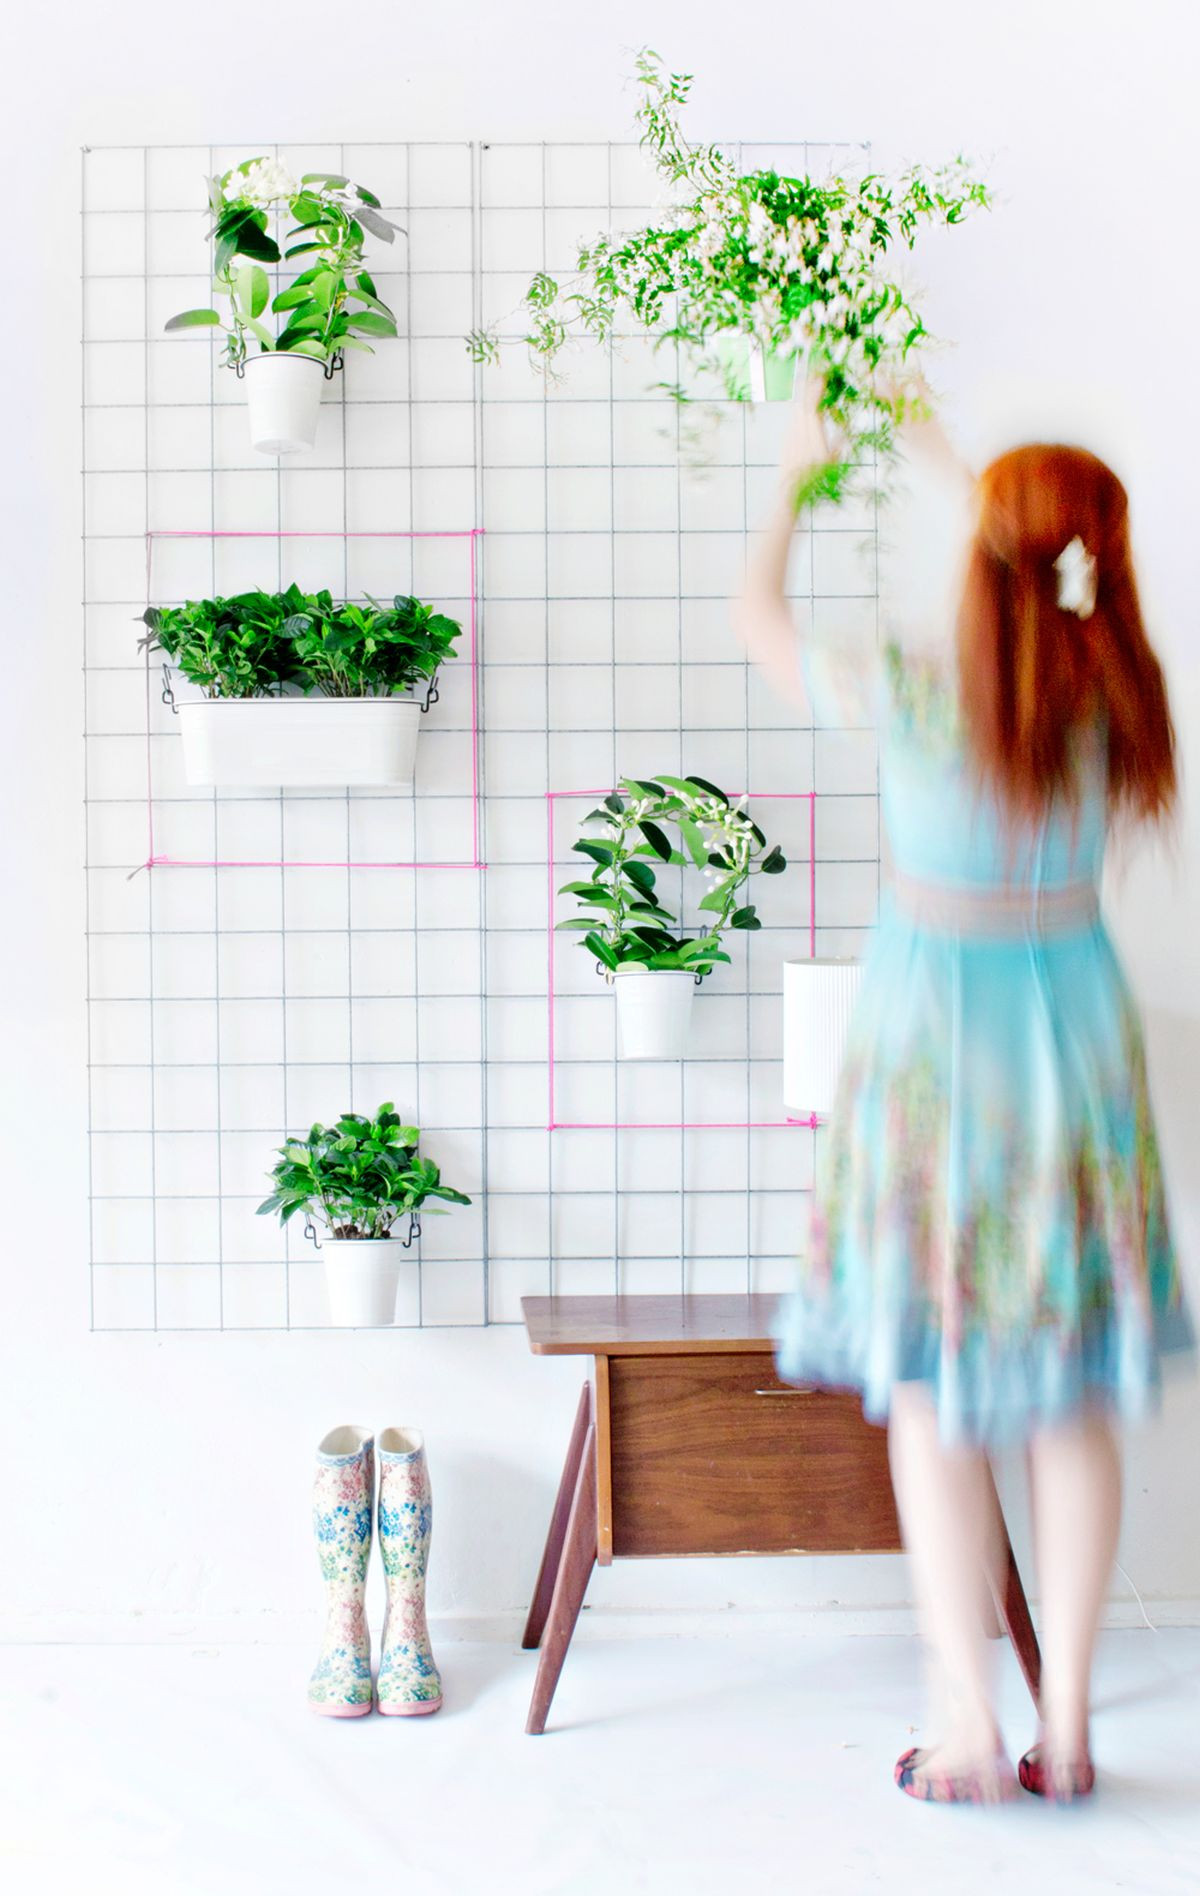 Best ideas about DIY Wall Planter . Save or Pin 16 DIY Wall Planters Teach You How To Greenify Your Home Now.